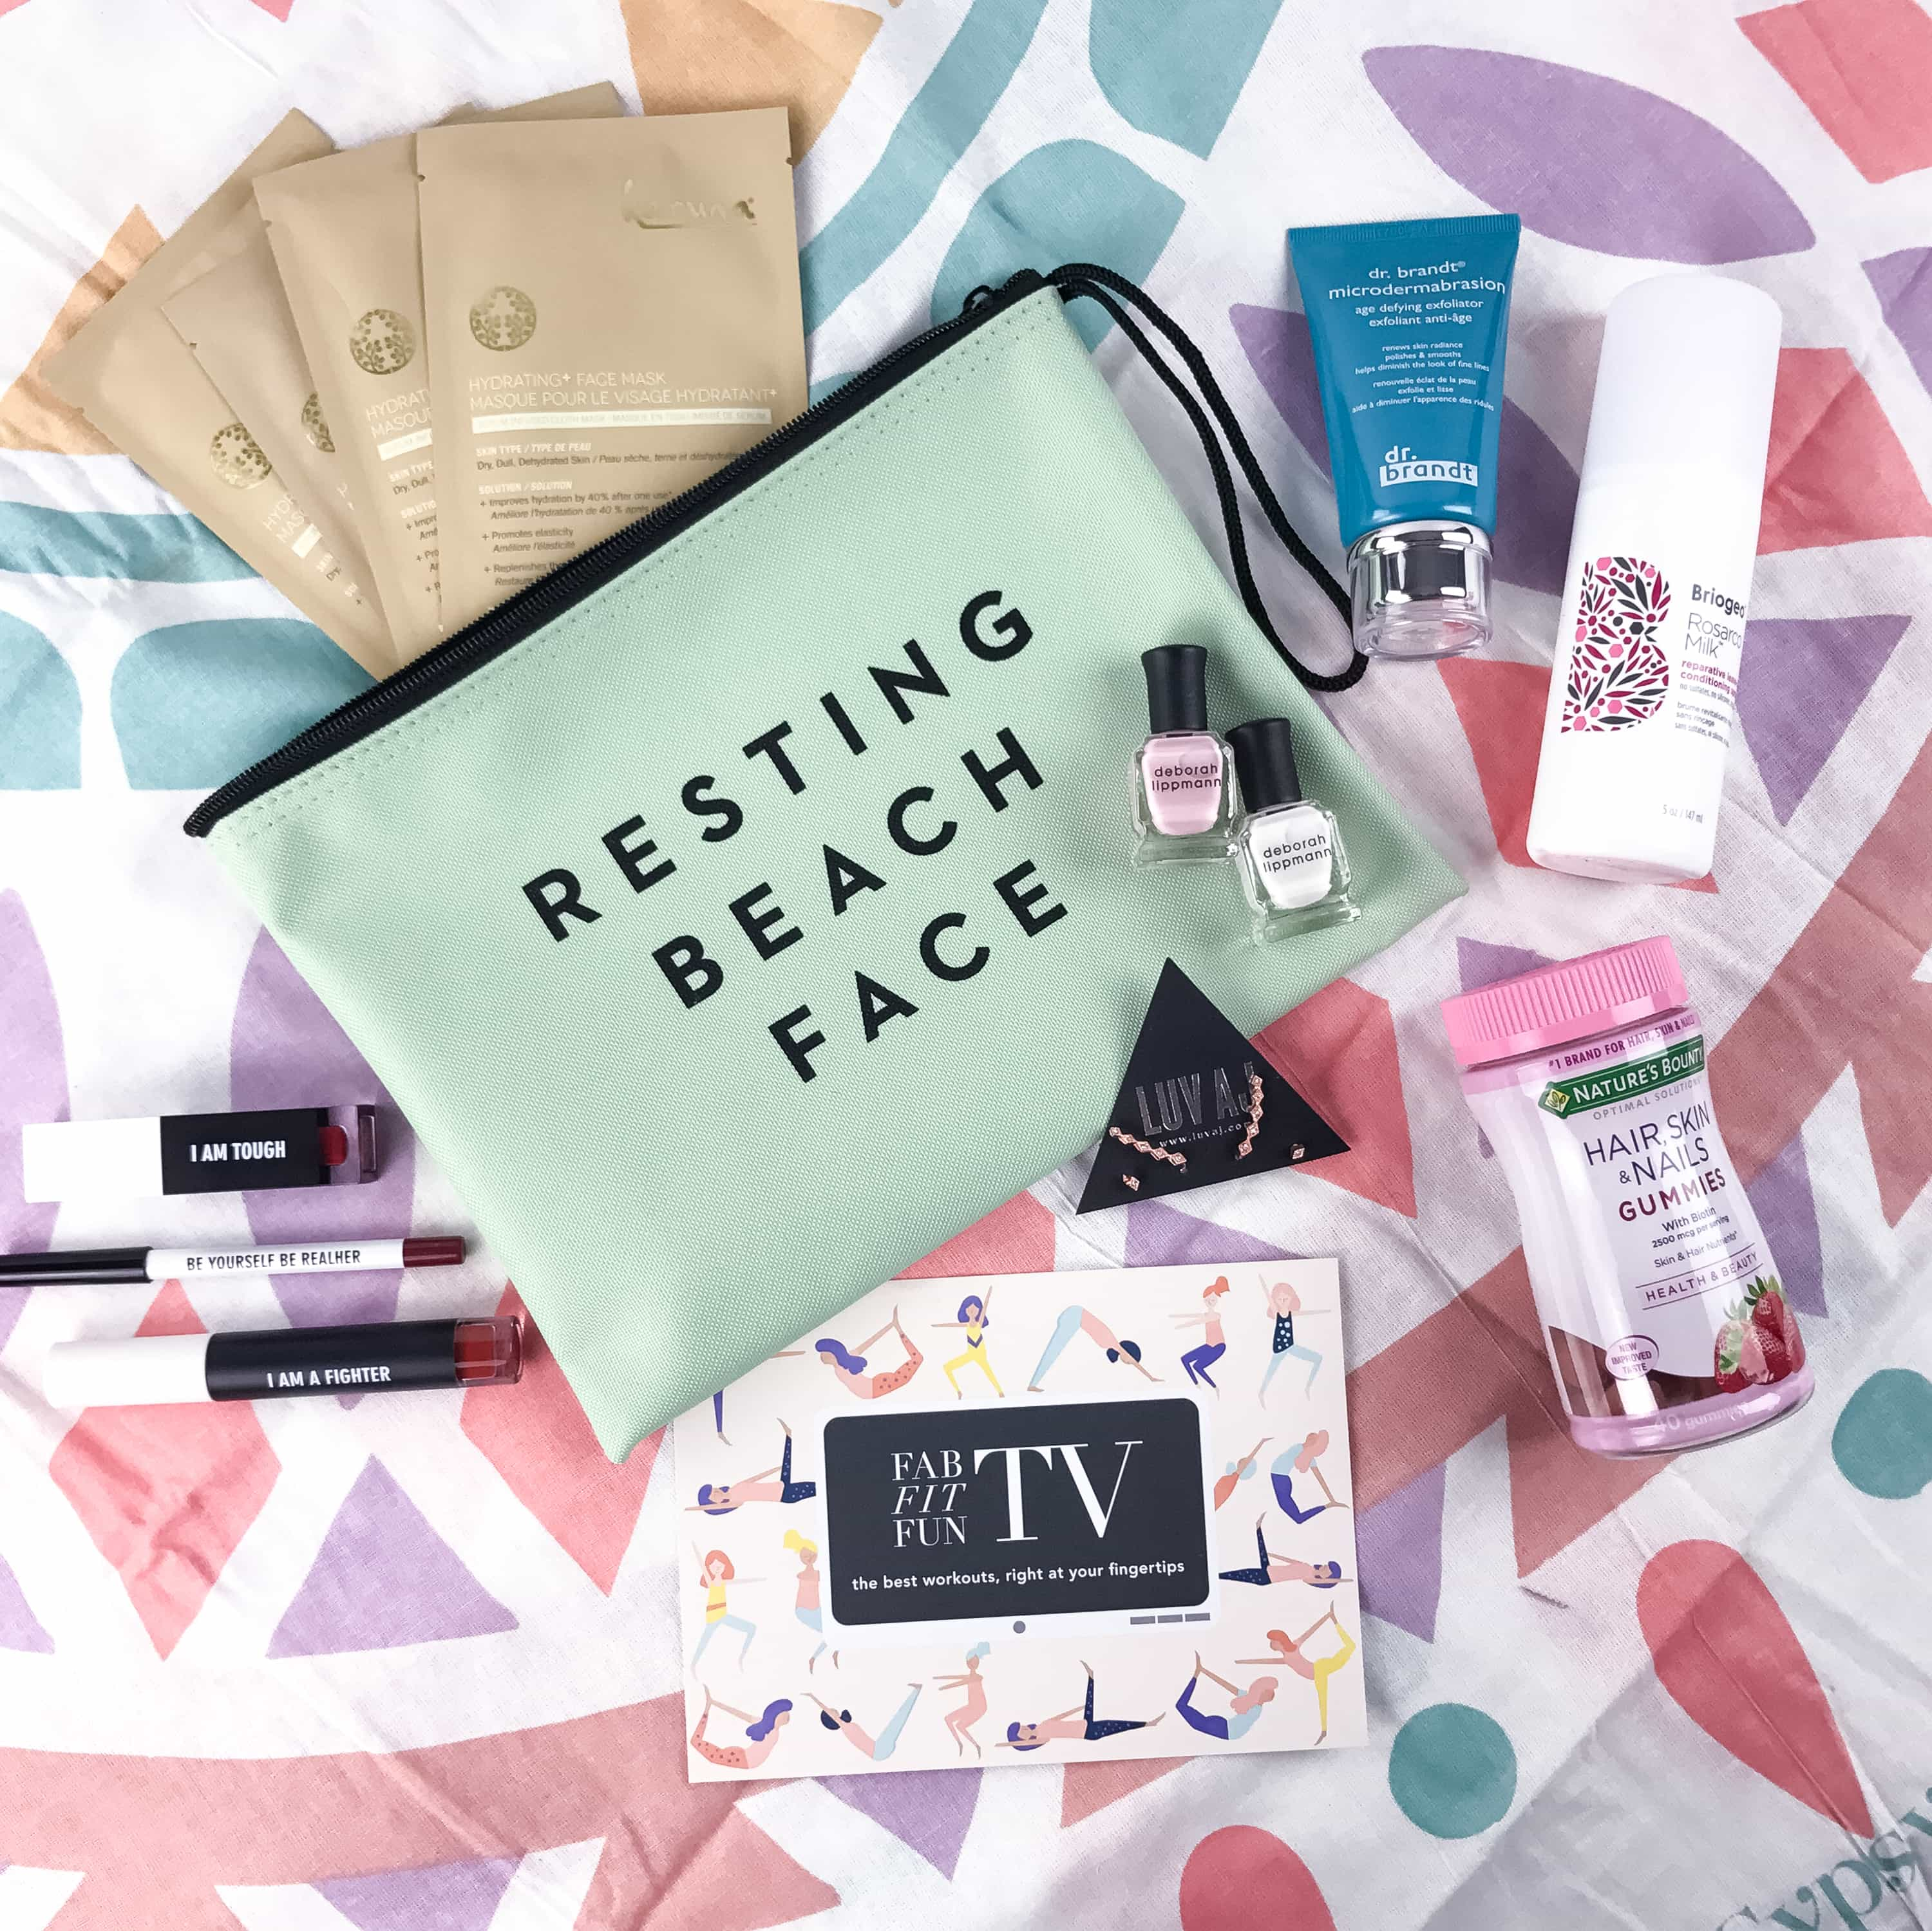 Check out my review of the Spring FabFitFun subscription box and save $10 off your first box with our coupon code!